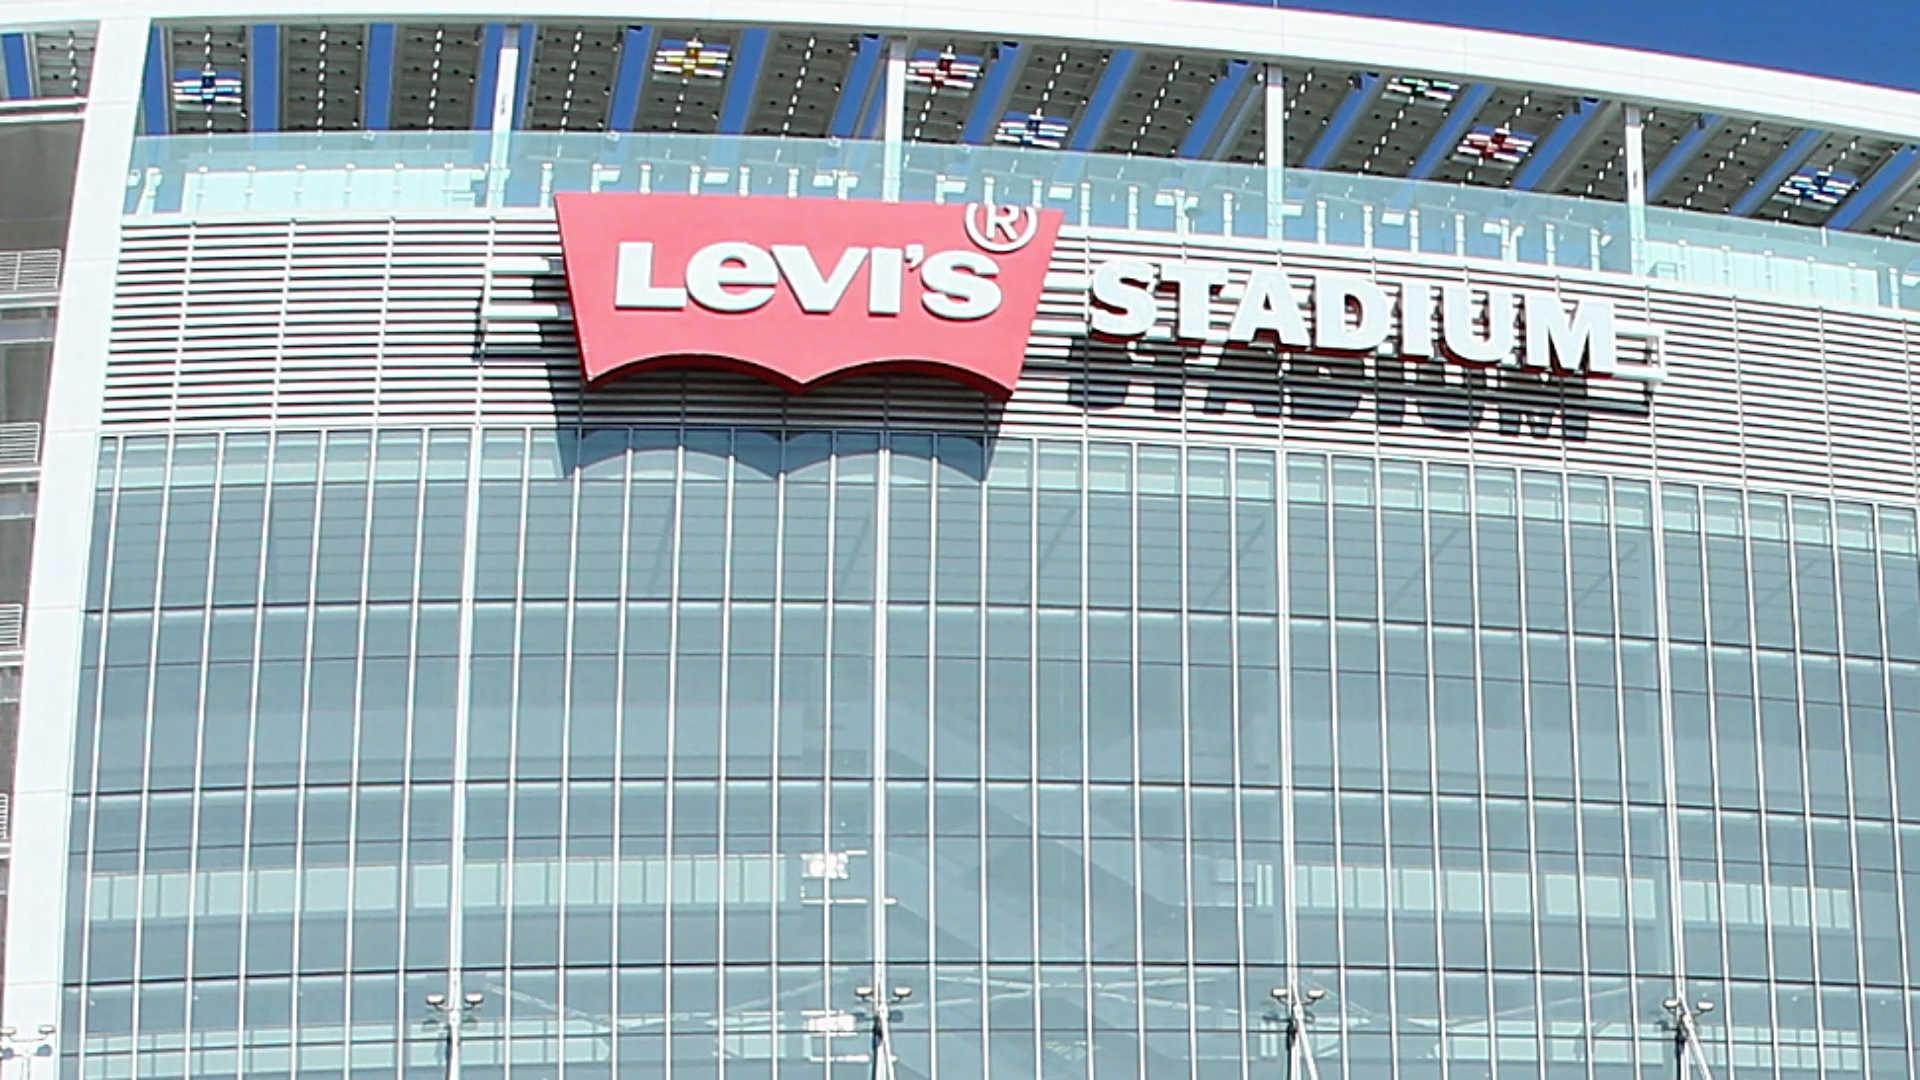 Whoa, even football stadium rent is crazy in the Bay Area